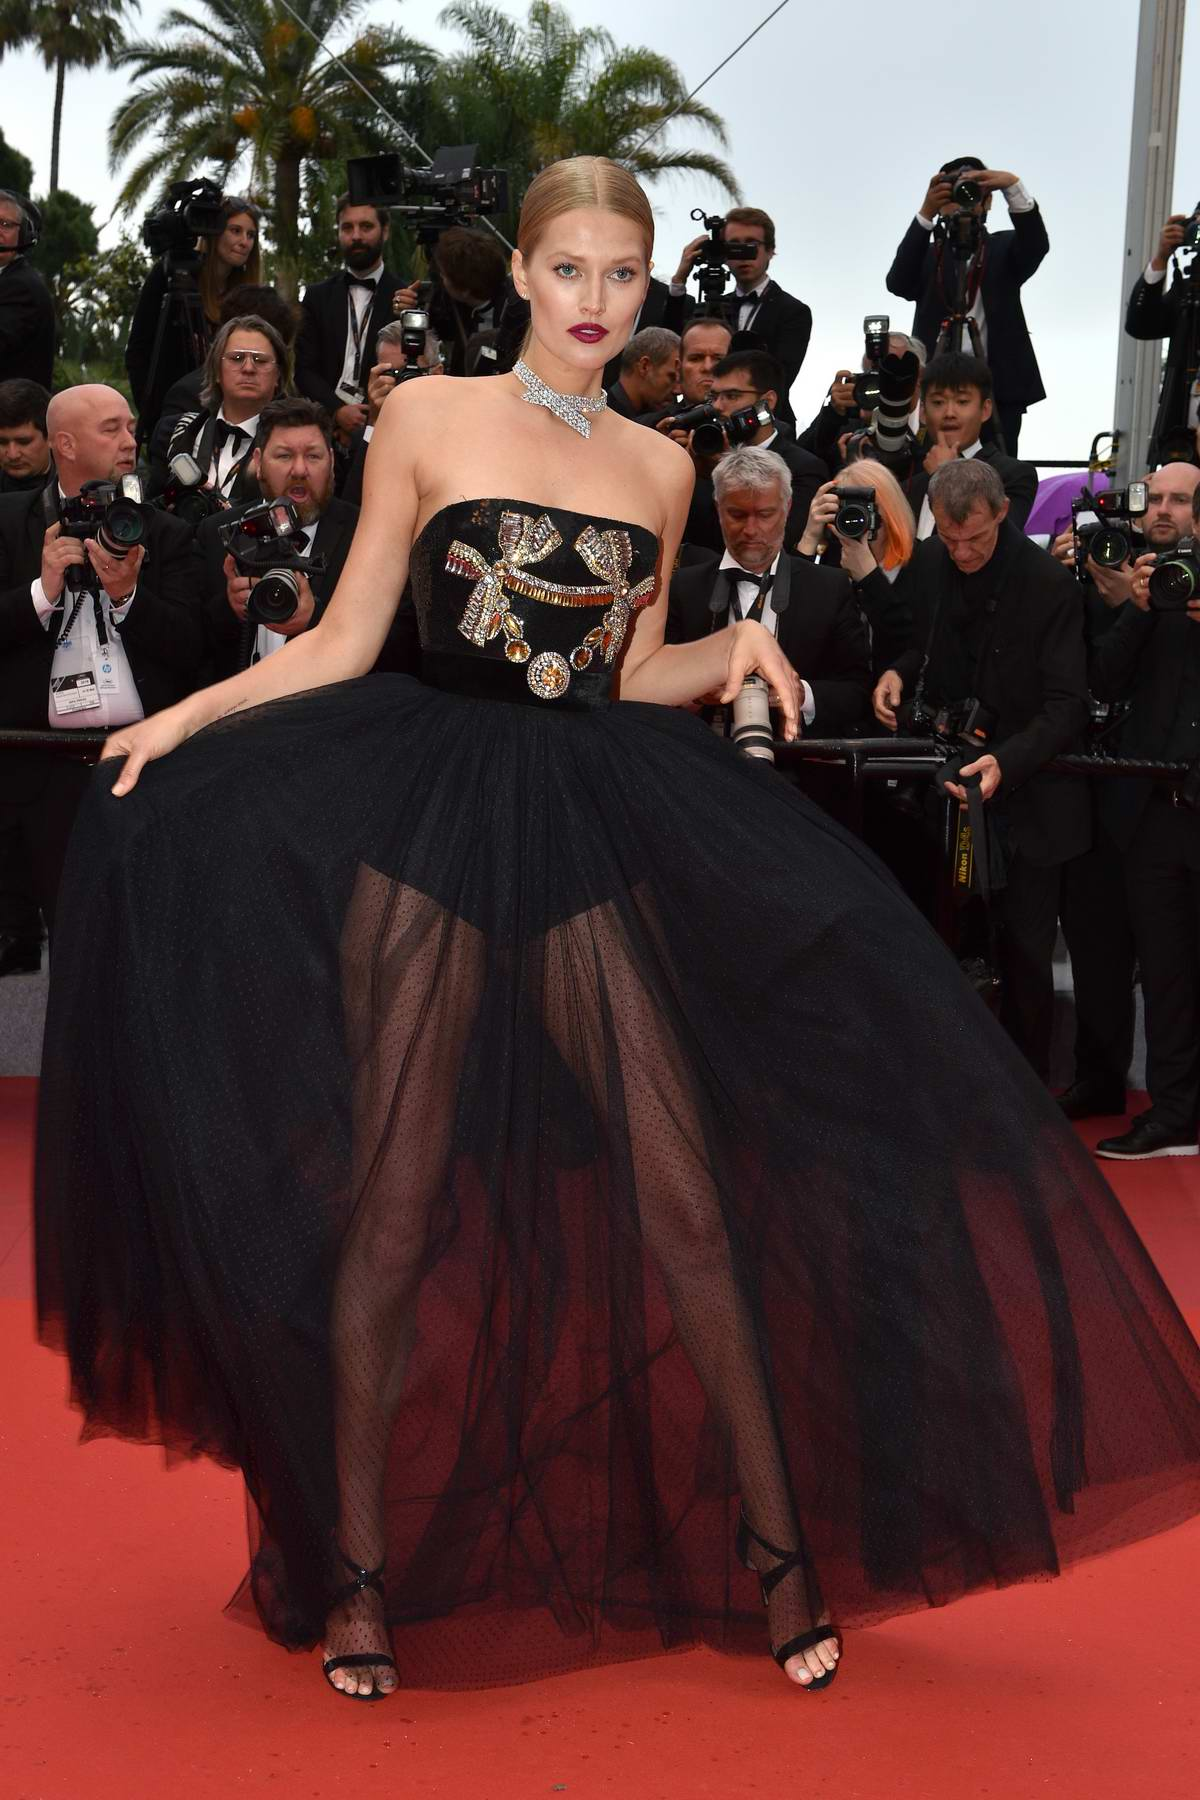 Toni Garrn attends 'Burning' premiere during 71st Cannes film festival in Cannes, France